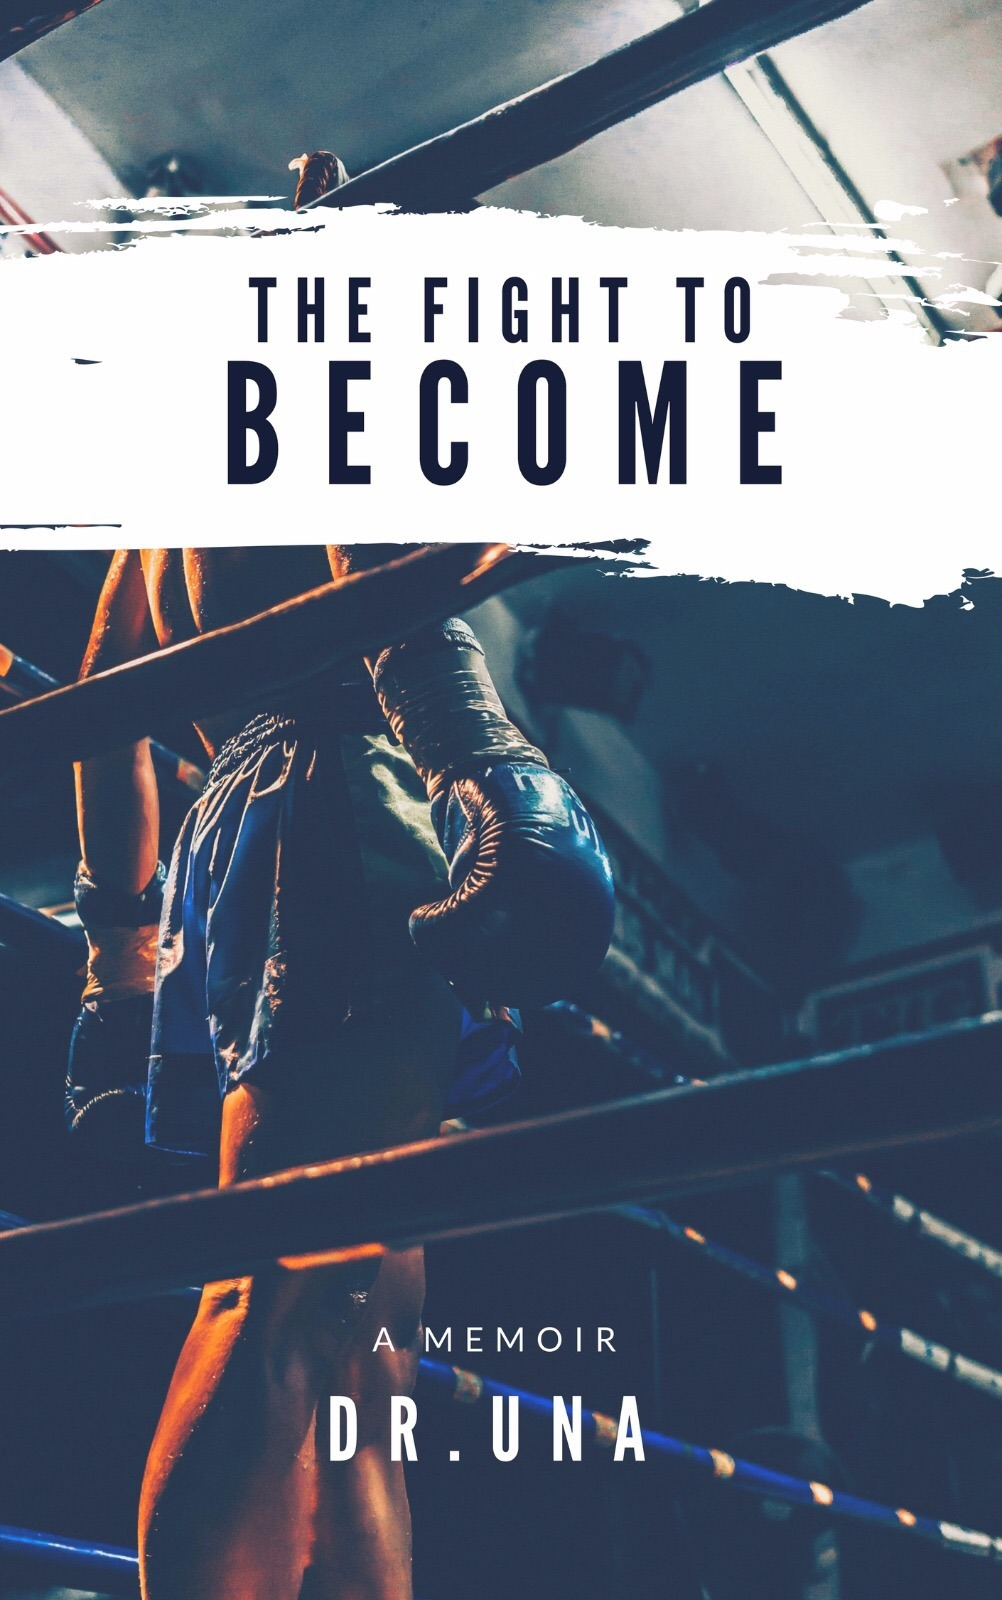 THE FIGHT TO BECOME - SOFT COVER BOOK